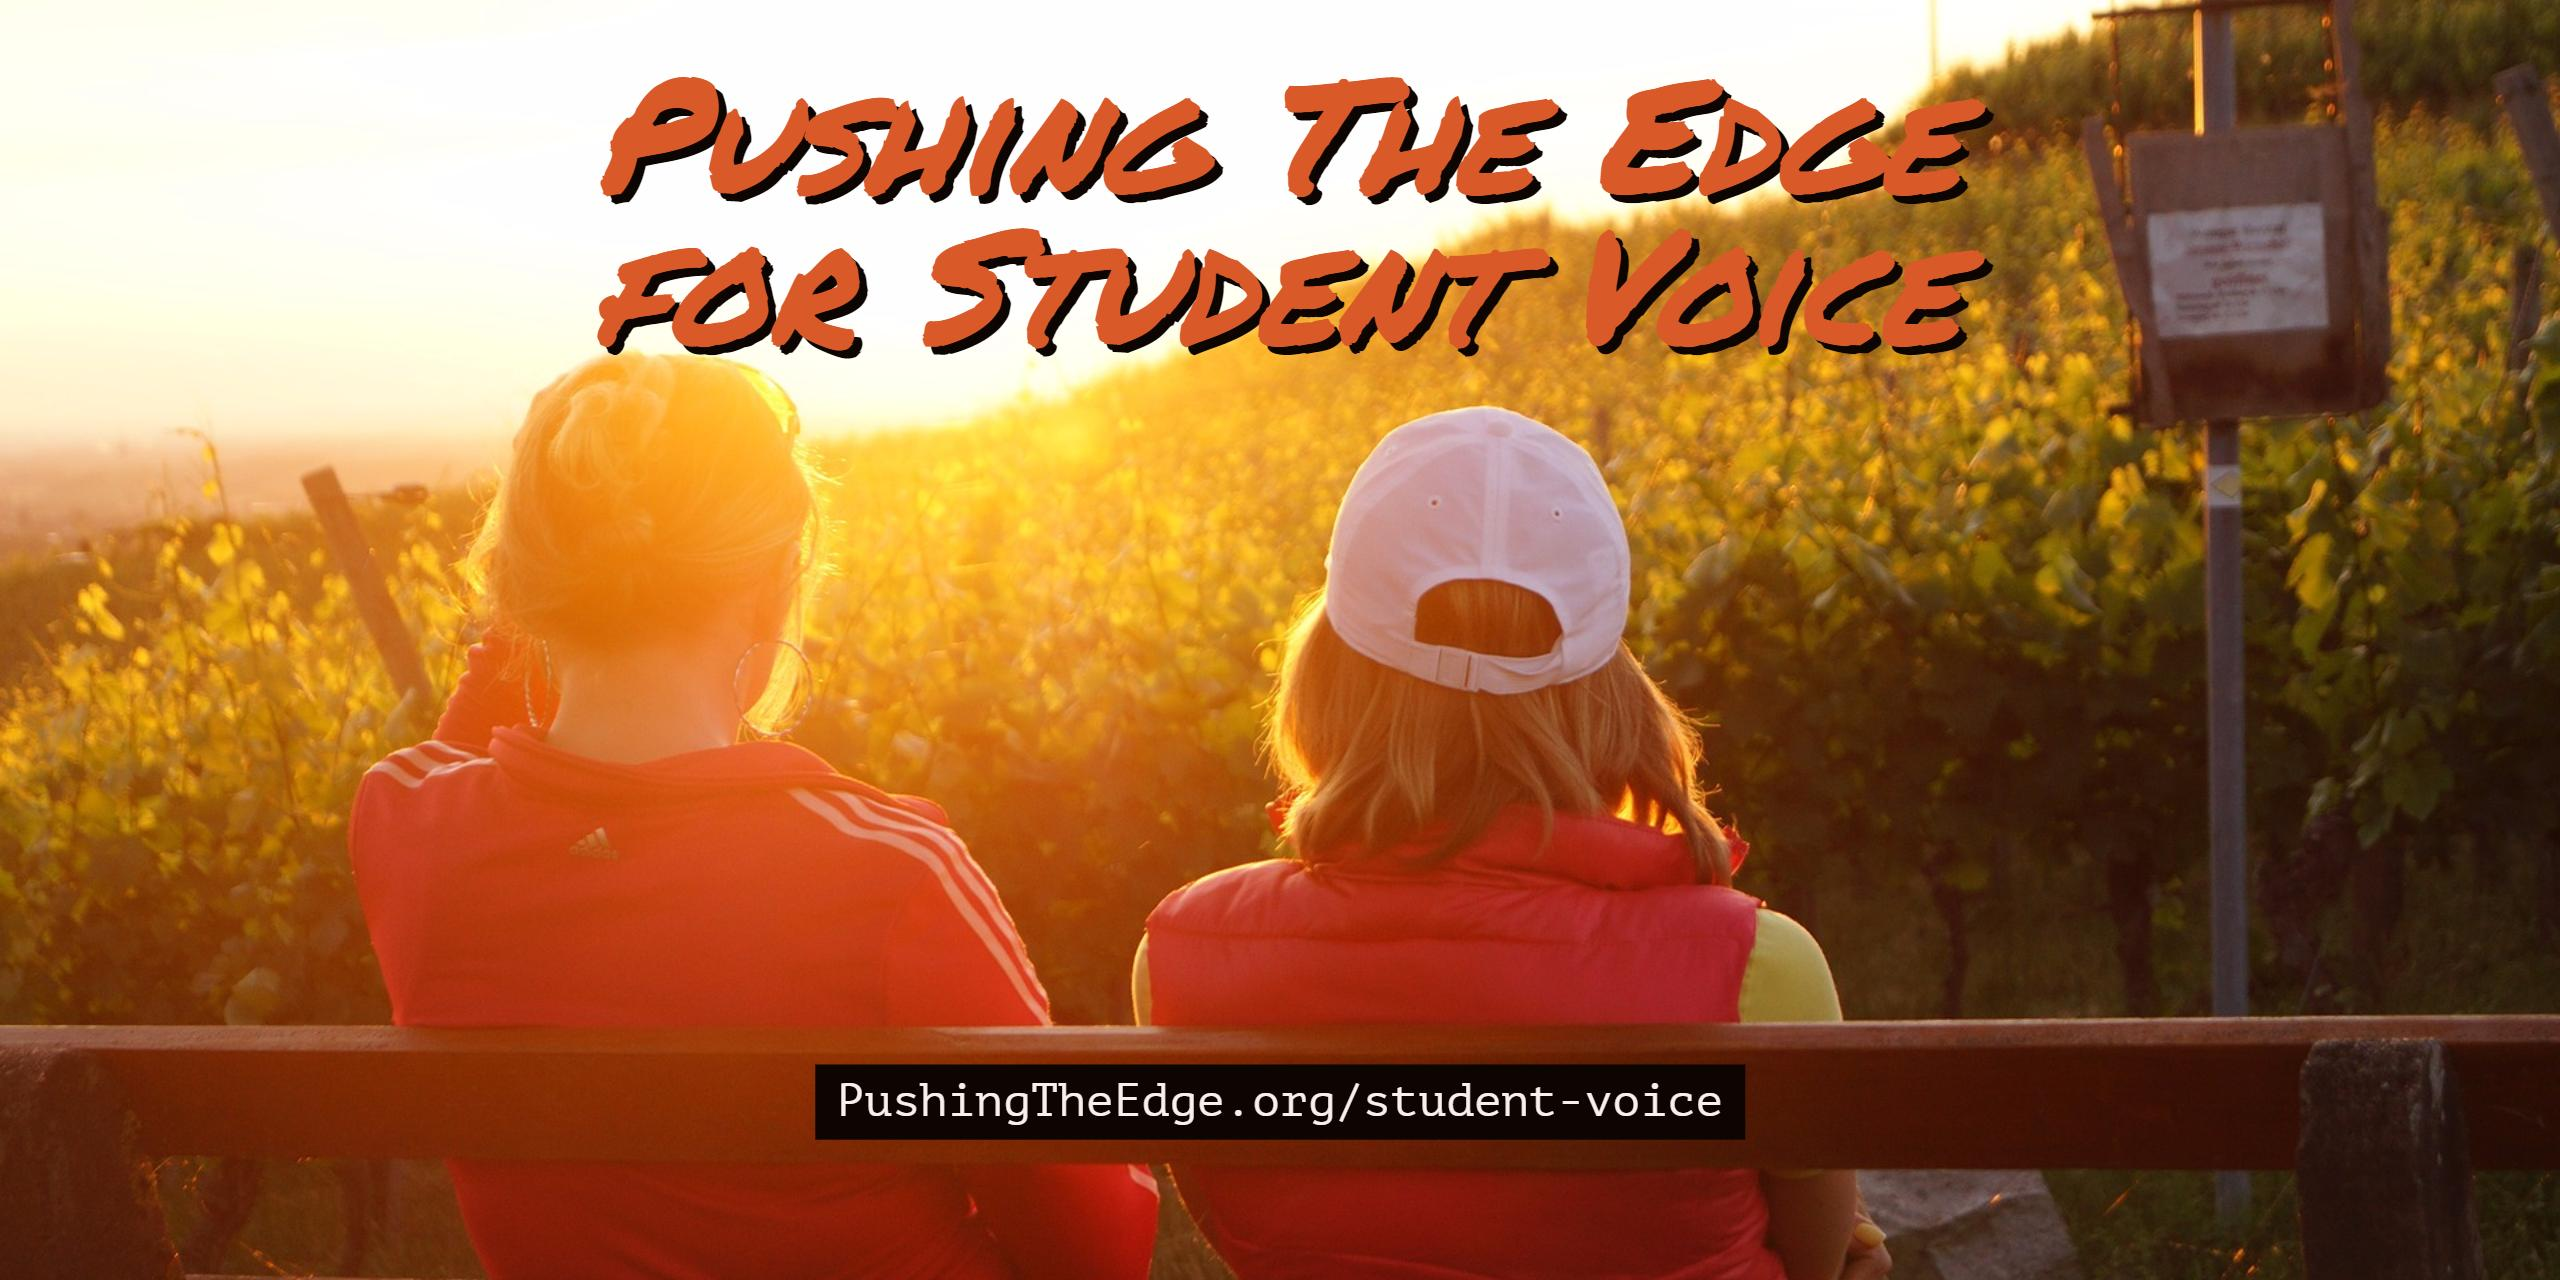 Pushing The Edge for Student Voice